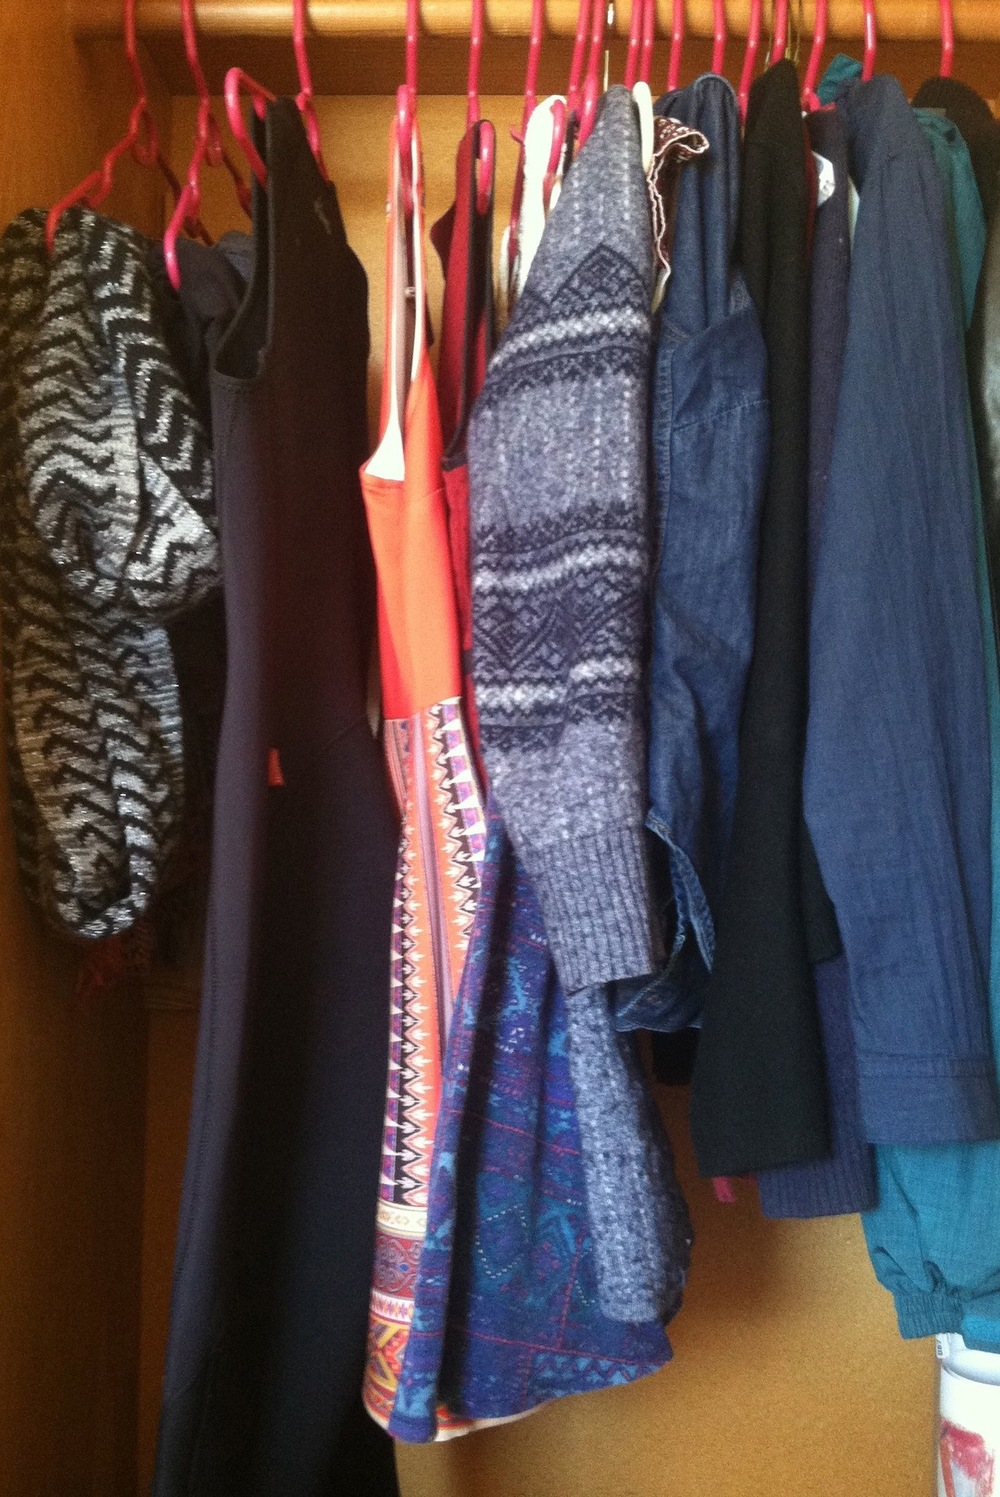 My well equipped NYC closet - wetsuit on the left, dresses on the right